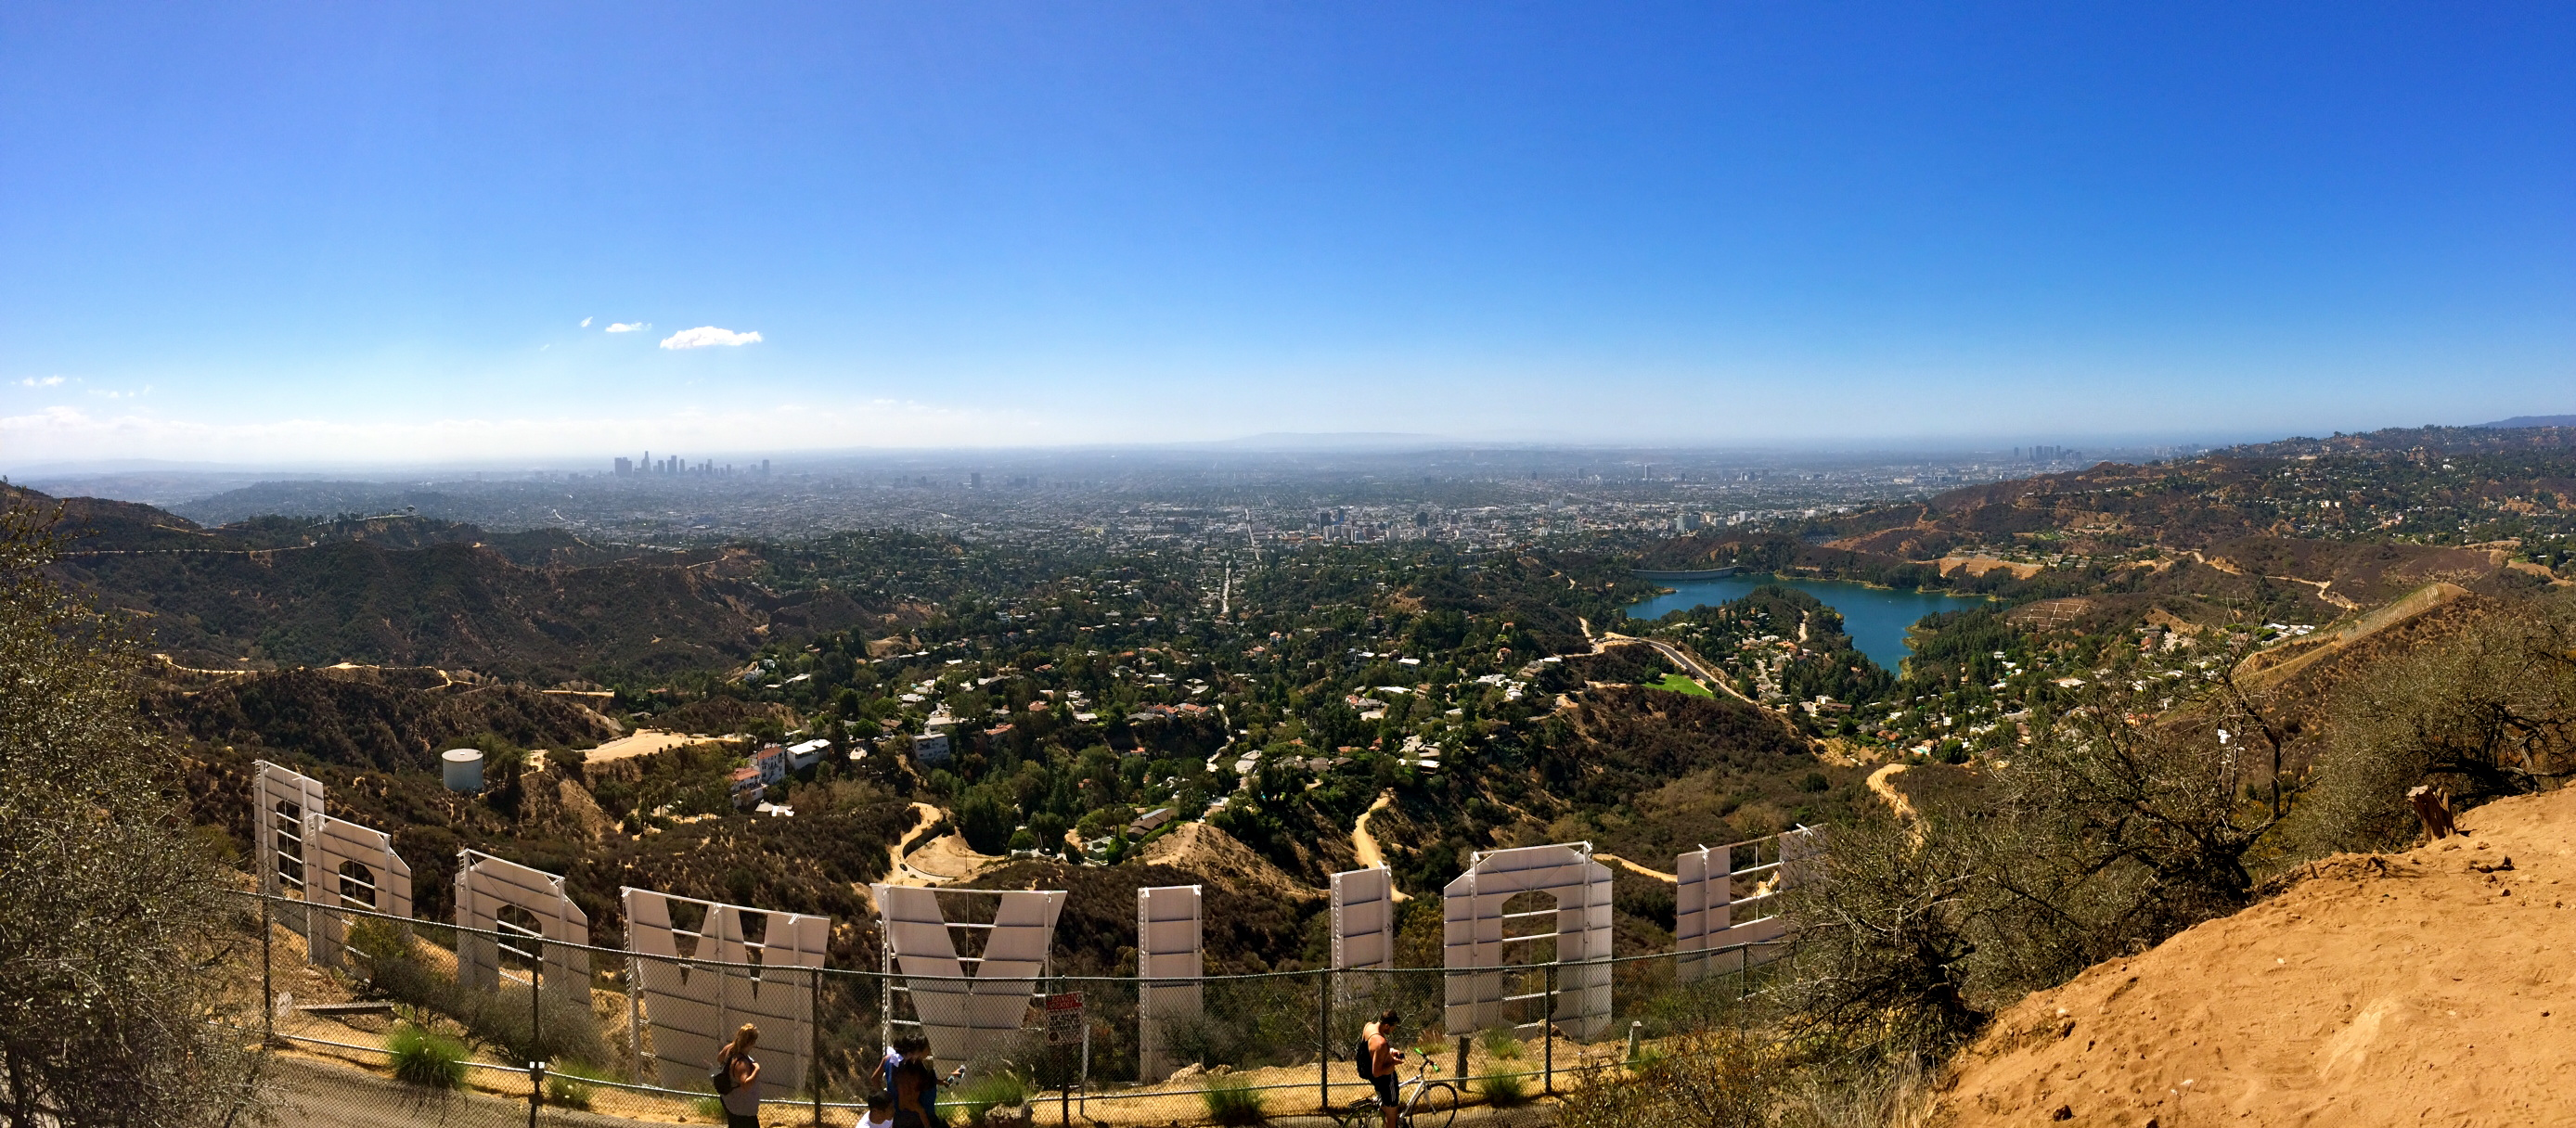 Travel Tip: Popular Hikes in Los Angeles